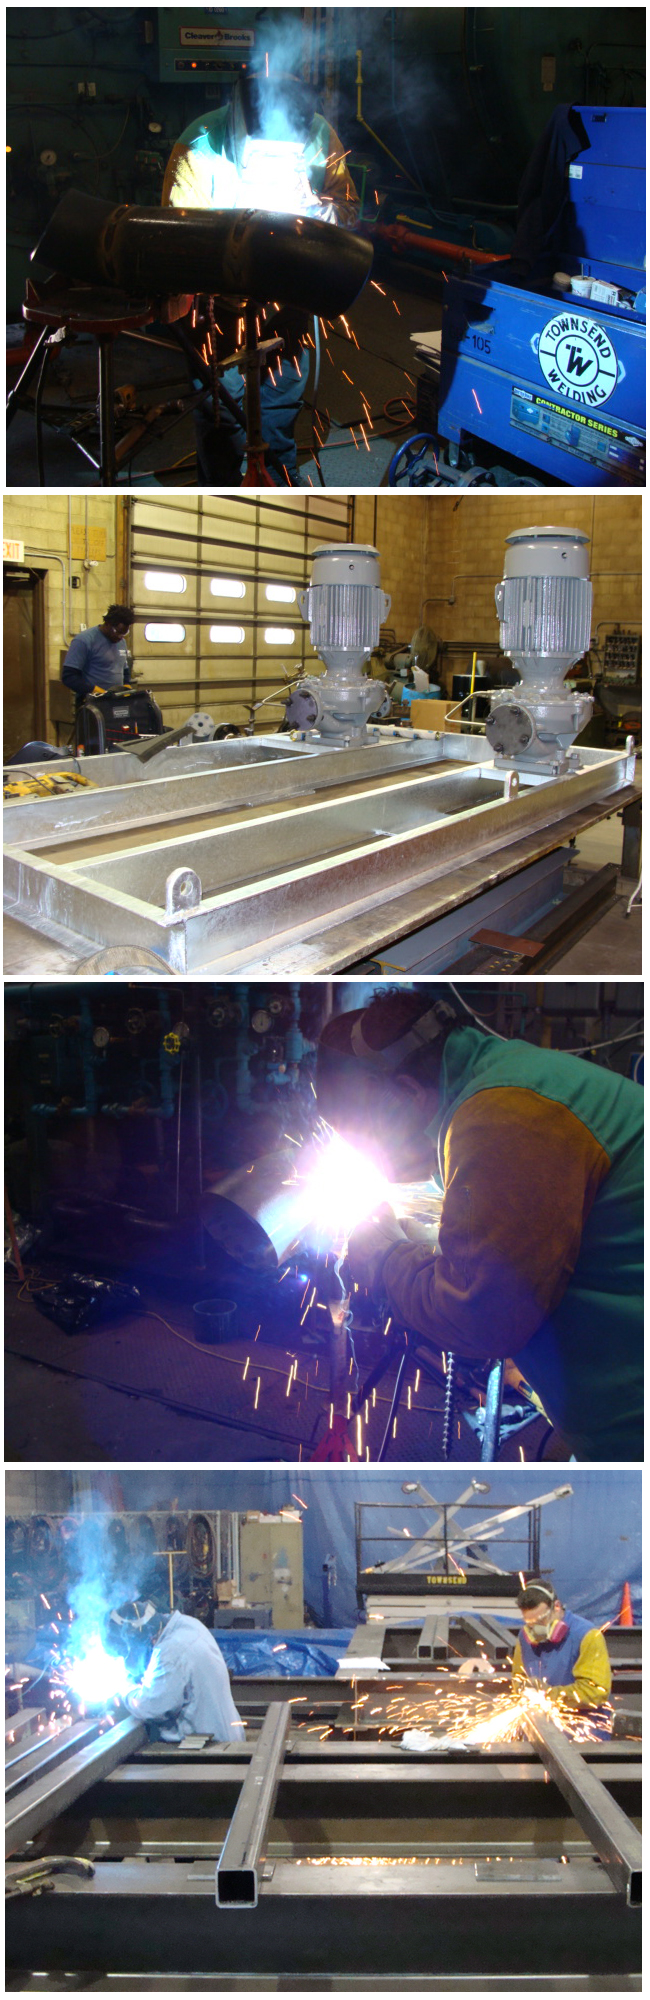 TW - Townsend Welding - The Townsend Group - fabrication and product manufacturing takes place at the Townsend welding facility in Wilmington, Ma. Piping fabrication, structural metals, packaged skids, Hygienic Stainless Sump Tanks, Stainless Condensate tanks and custom equipment.